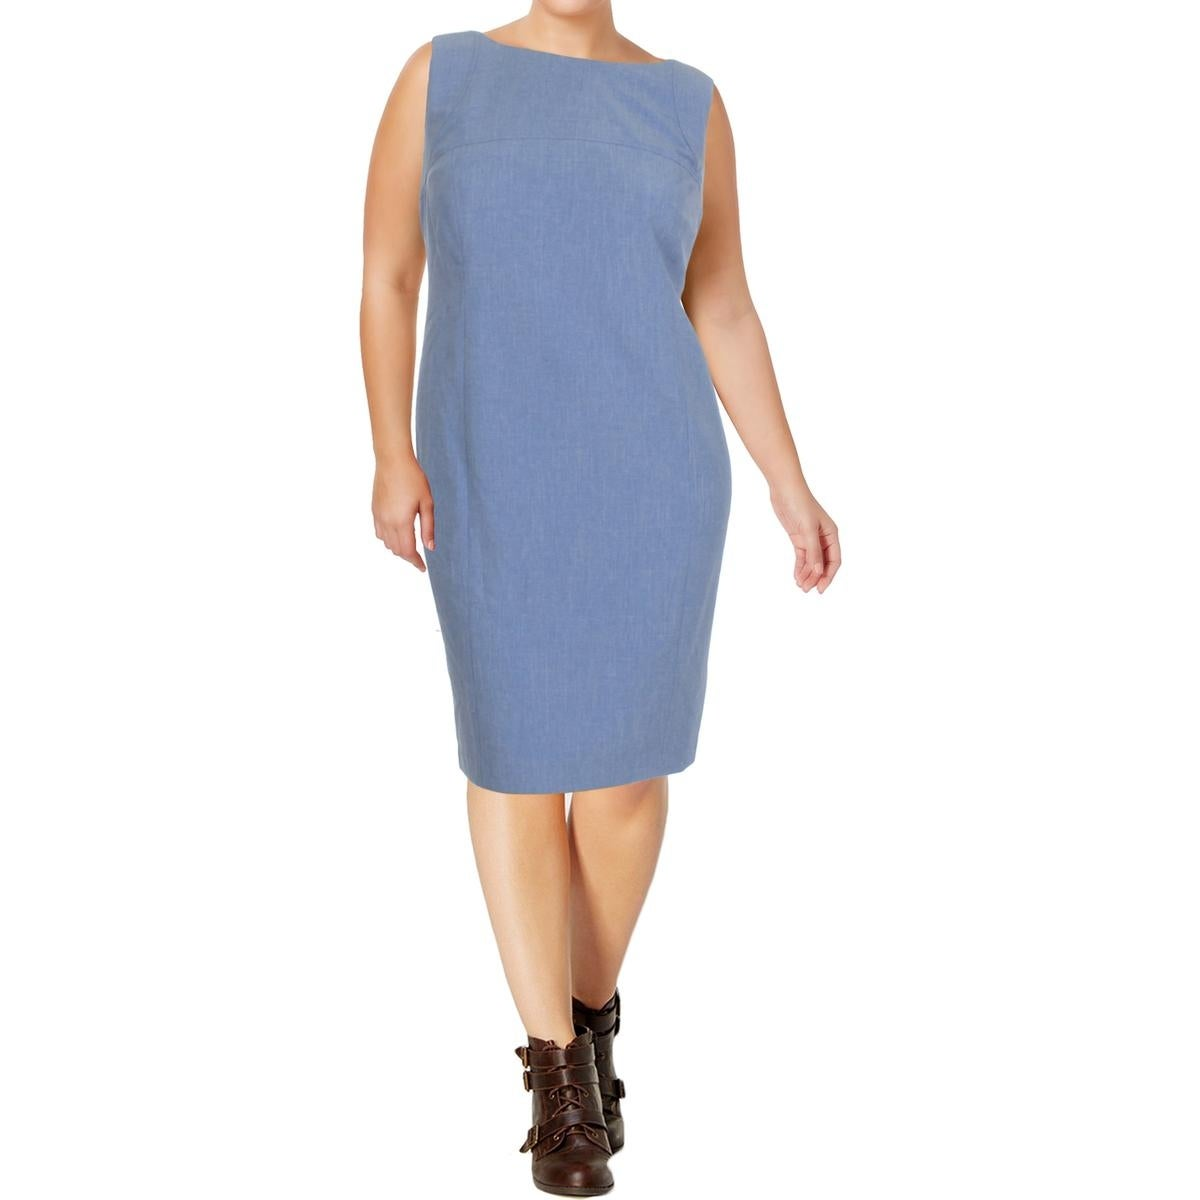 584ced0f84 Shop Nine West Womens Plus Wear to Work Dress Crosshatch Seamed - Free  Shipping On Orders Over  45 - Overstock - 22641194